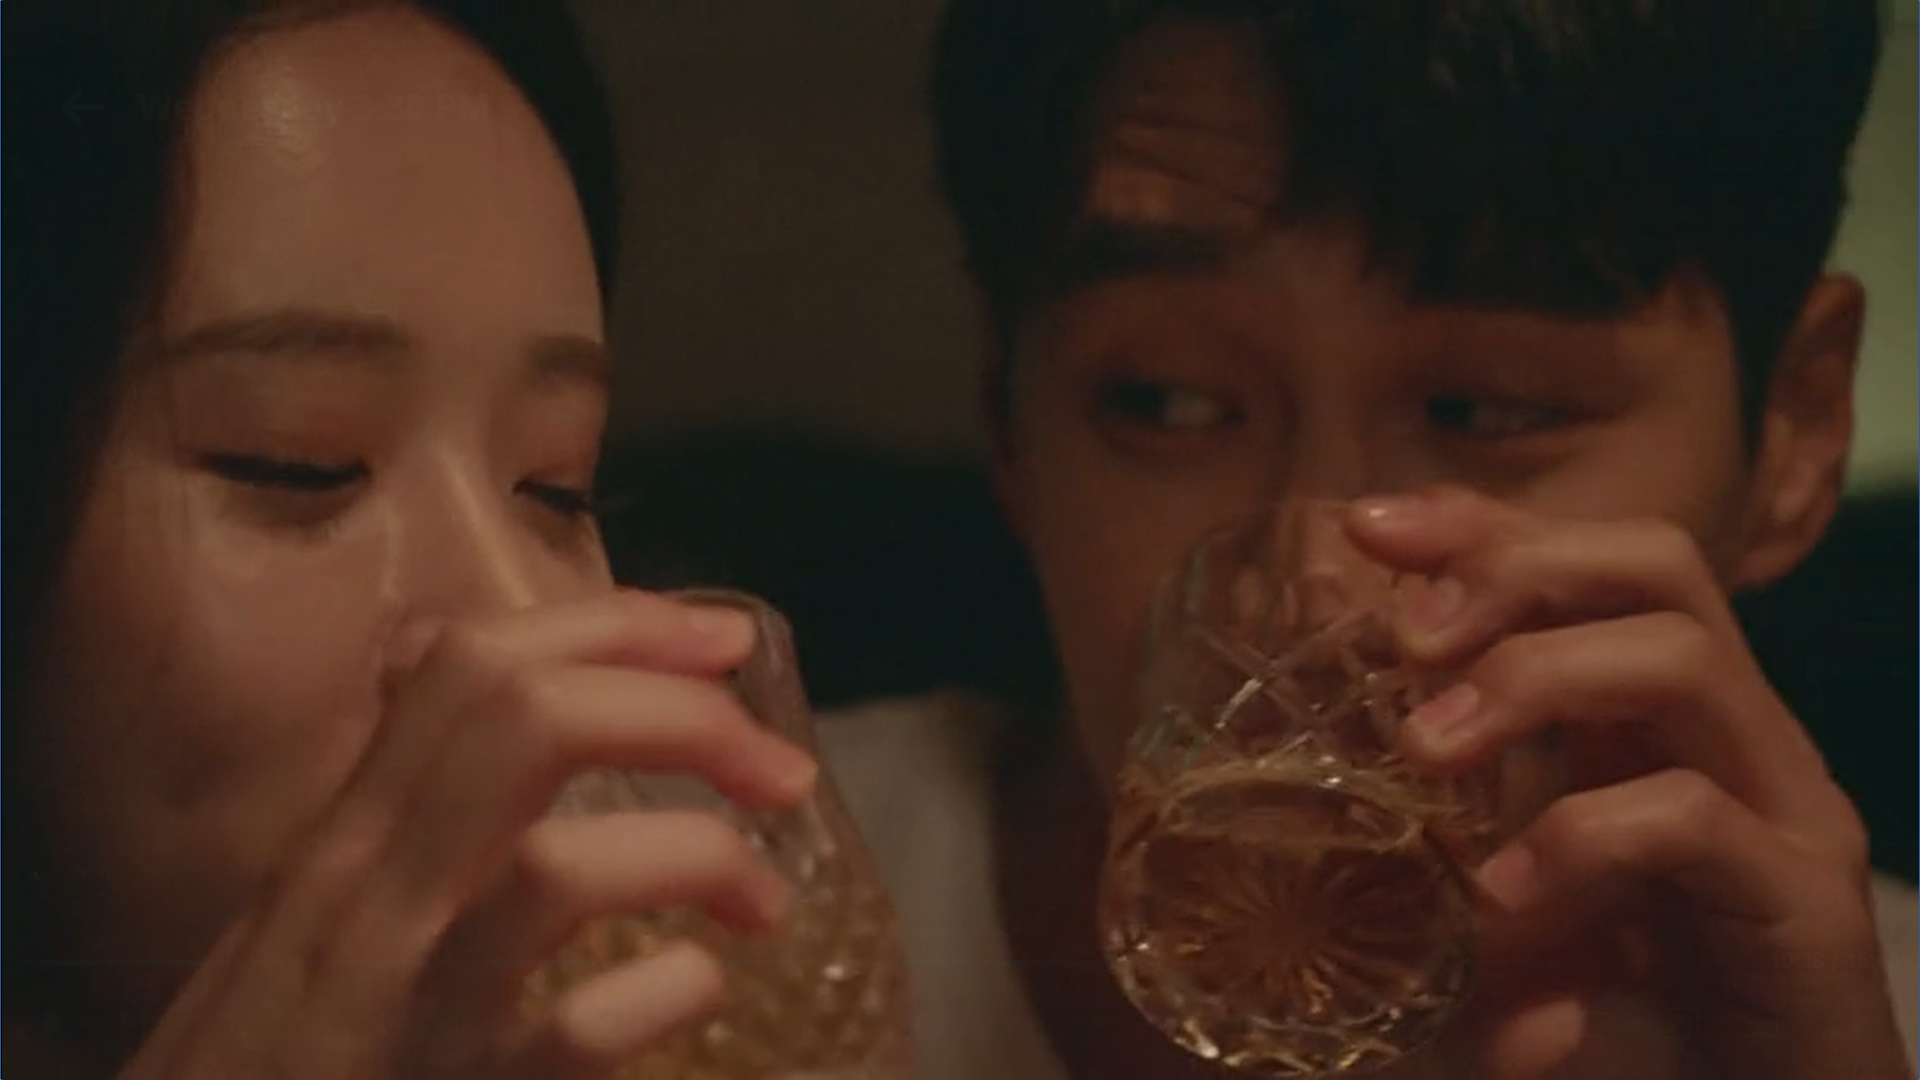 Wednesday 3:30 PM Baek Seung-gyu drinking alcohol at the club